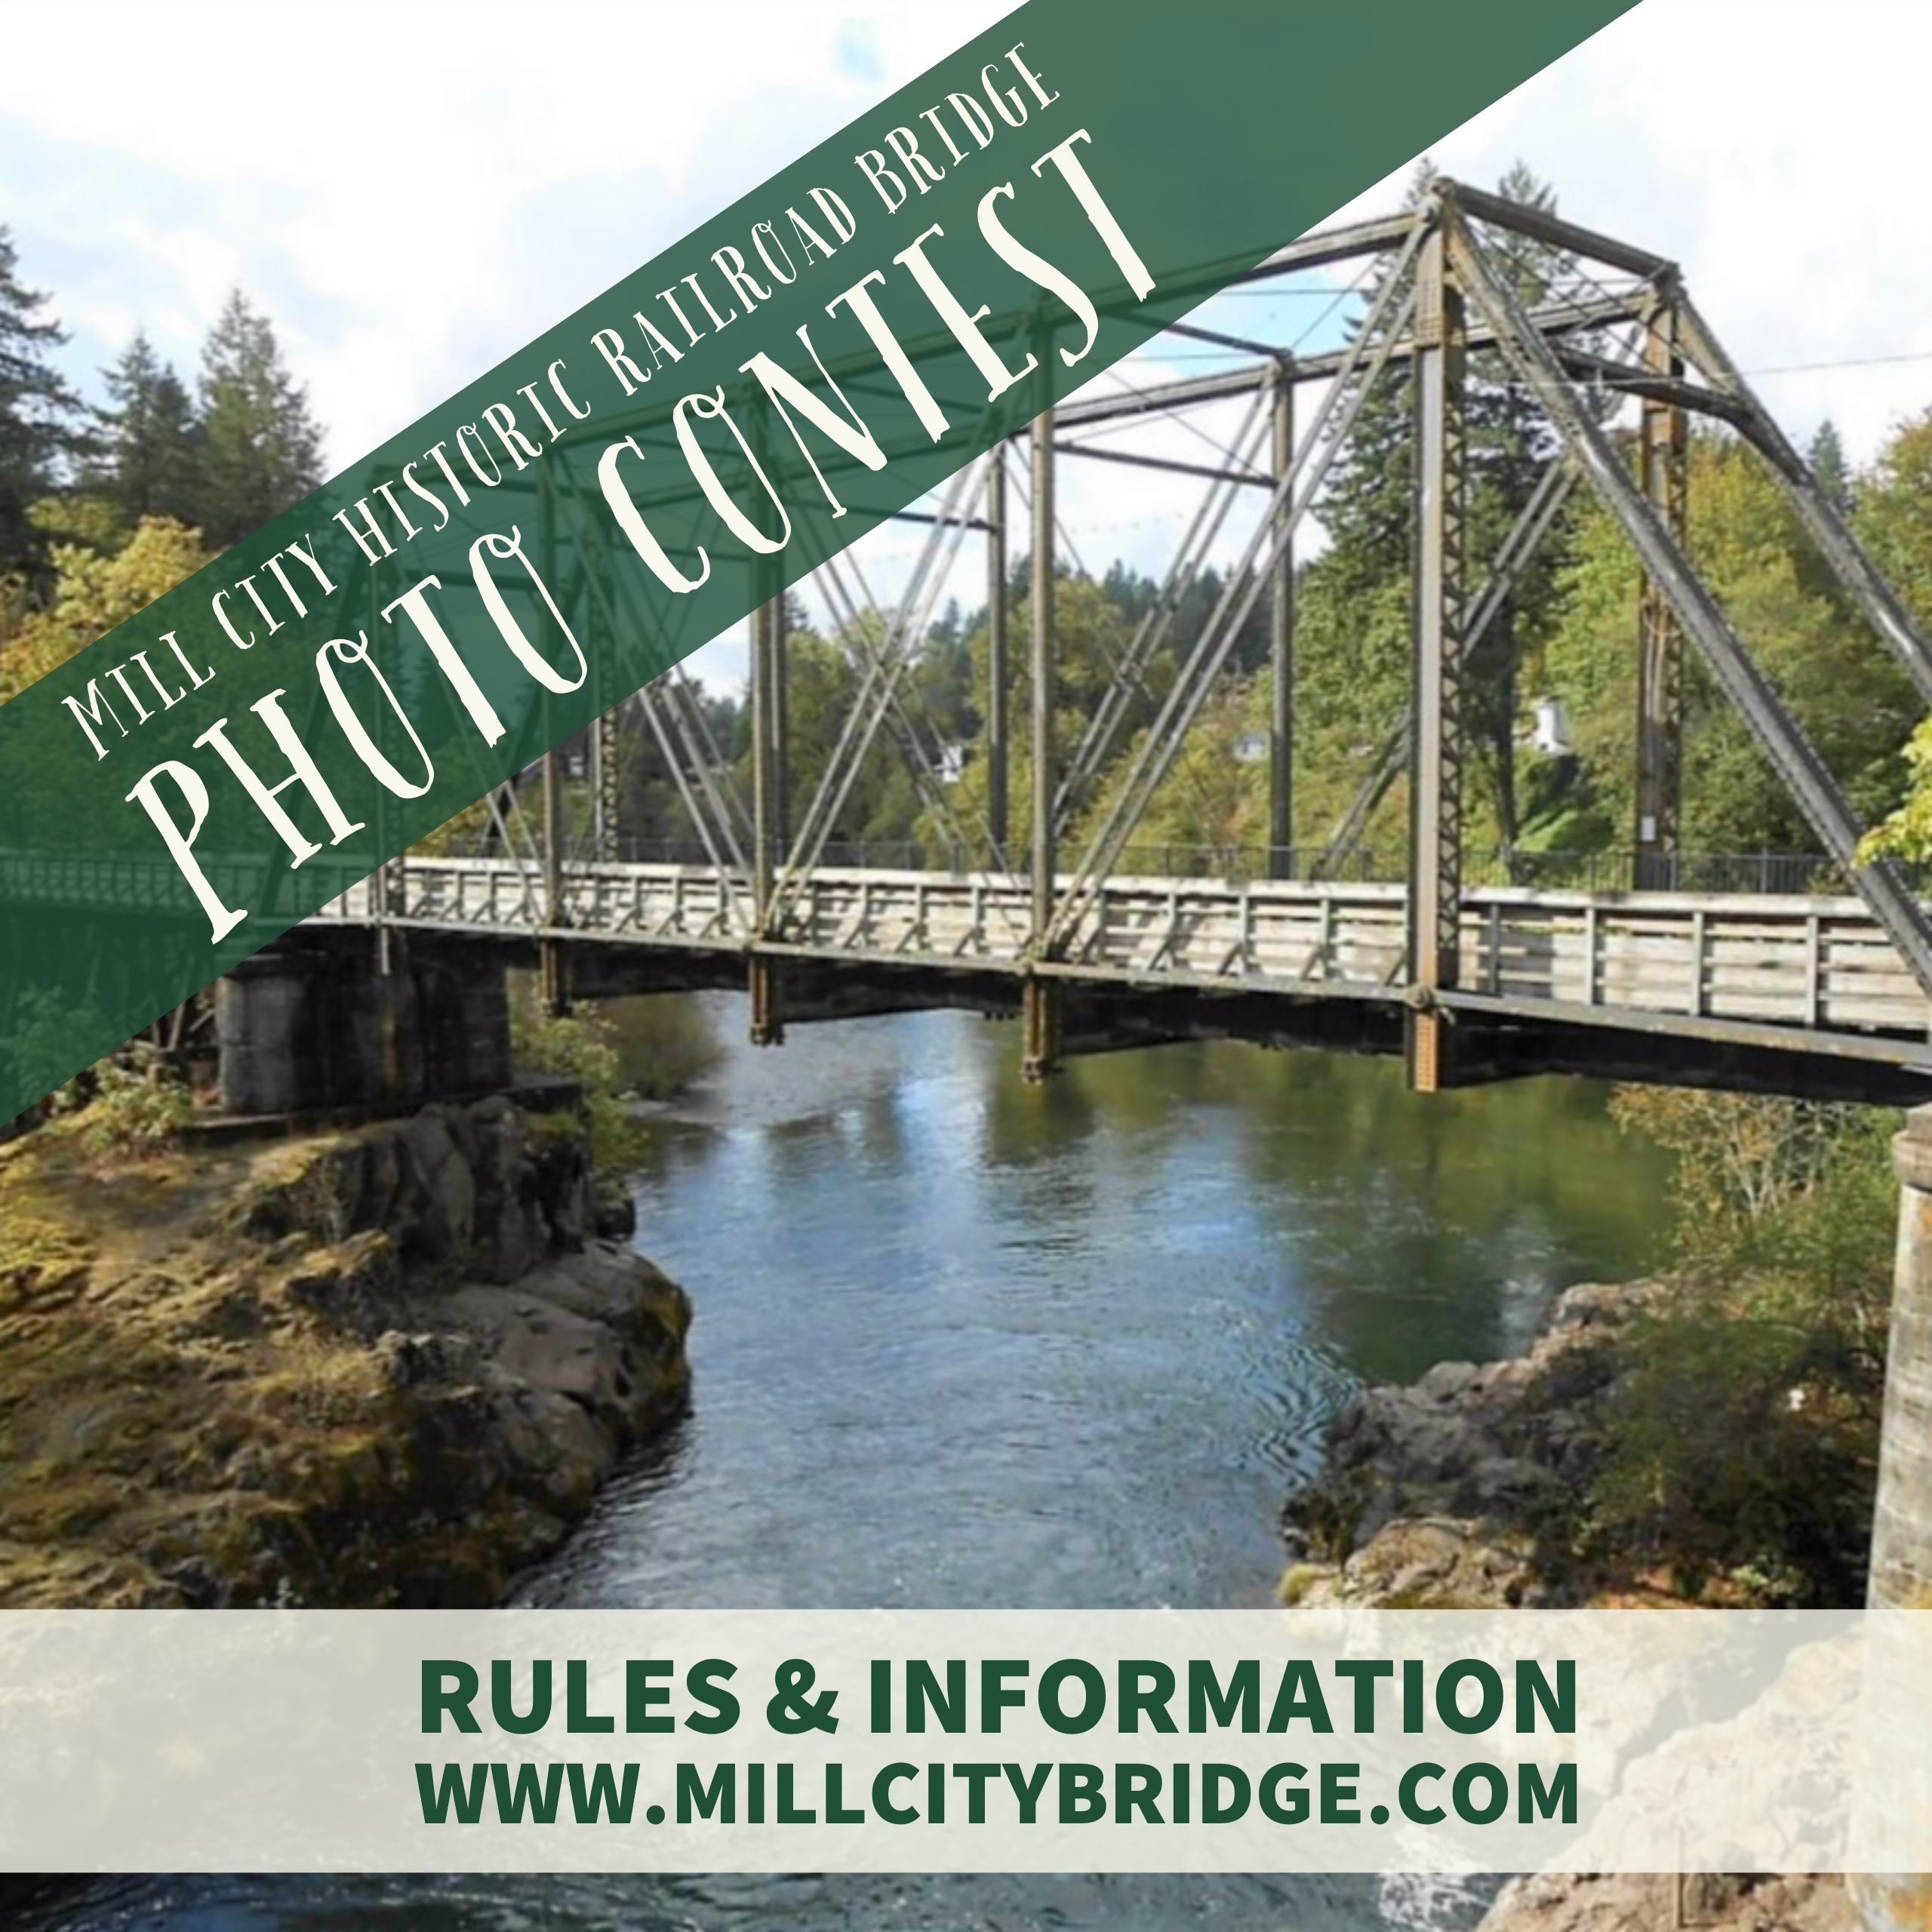 Enter The Mill City Historic Railroad Bridge Photo Contest!